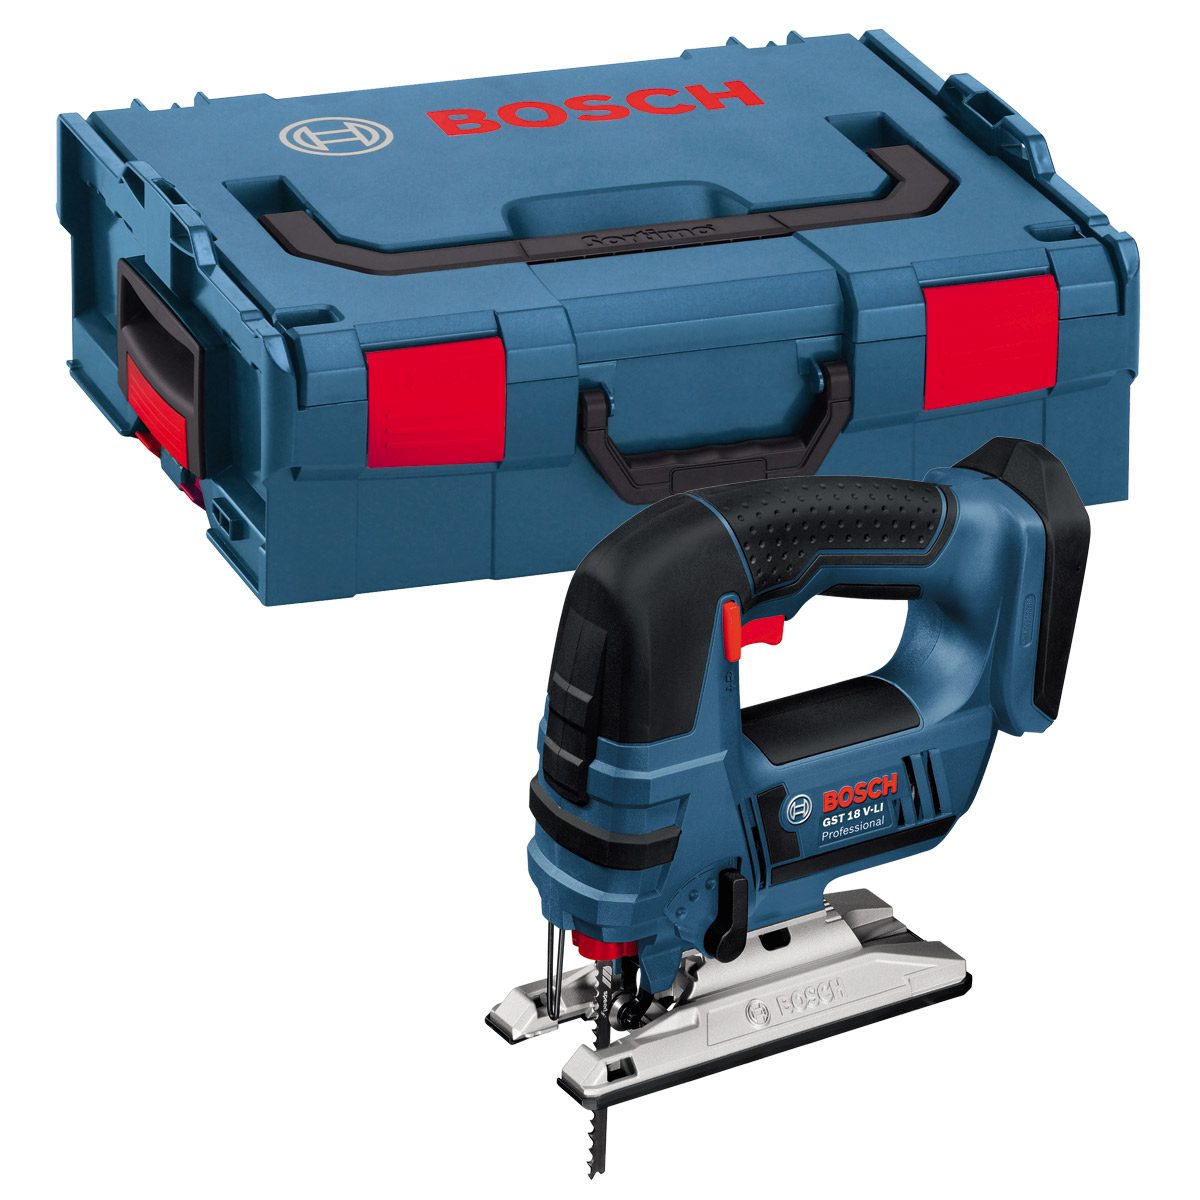 BOSCH GST18V-LIBN 18V JIGSAW (BODY ONLY) SUPPLIED IN L-BOXX